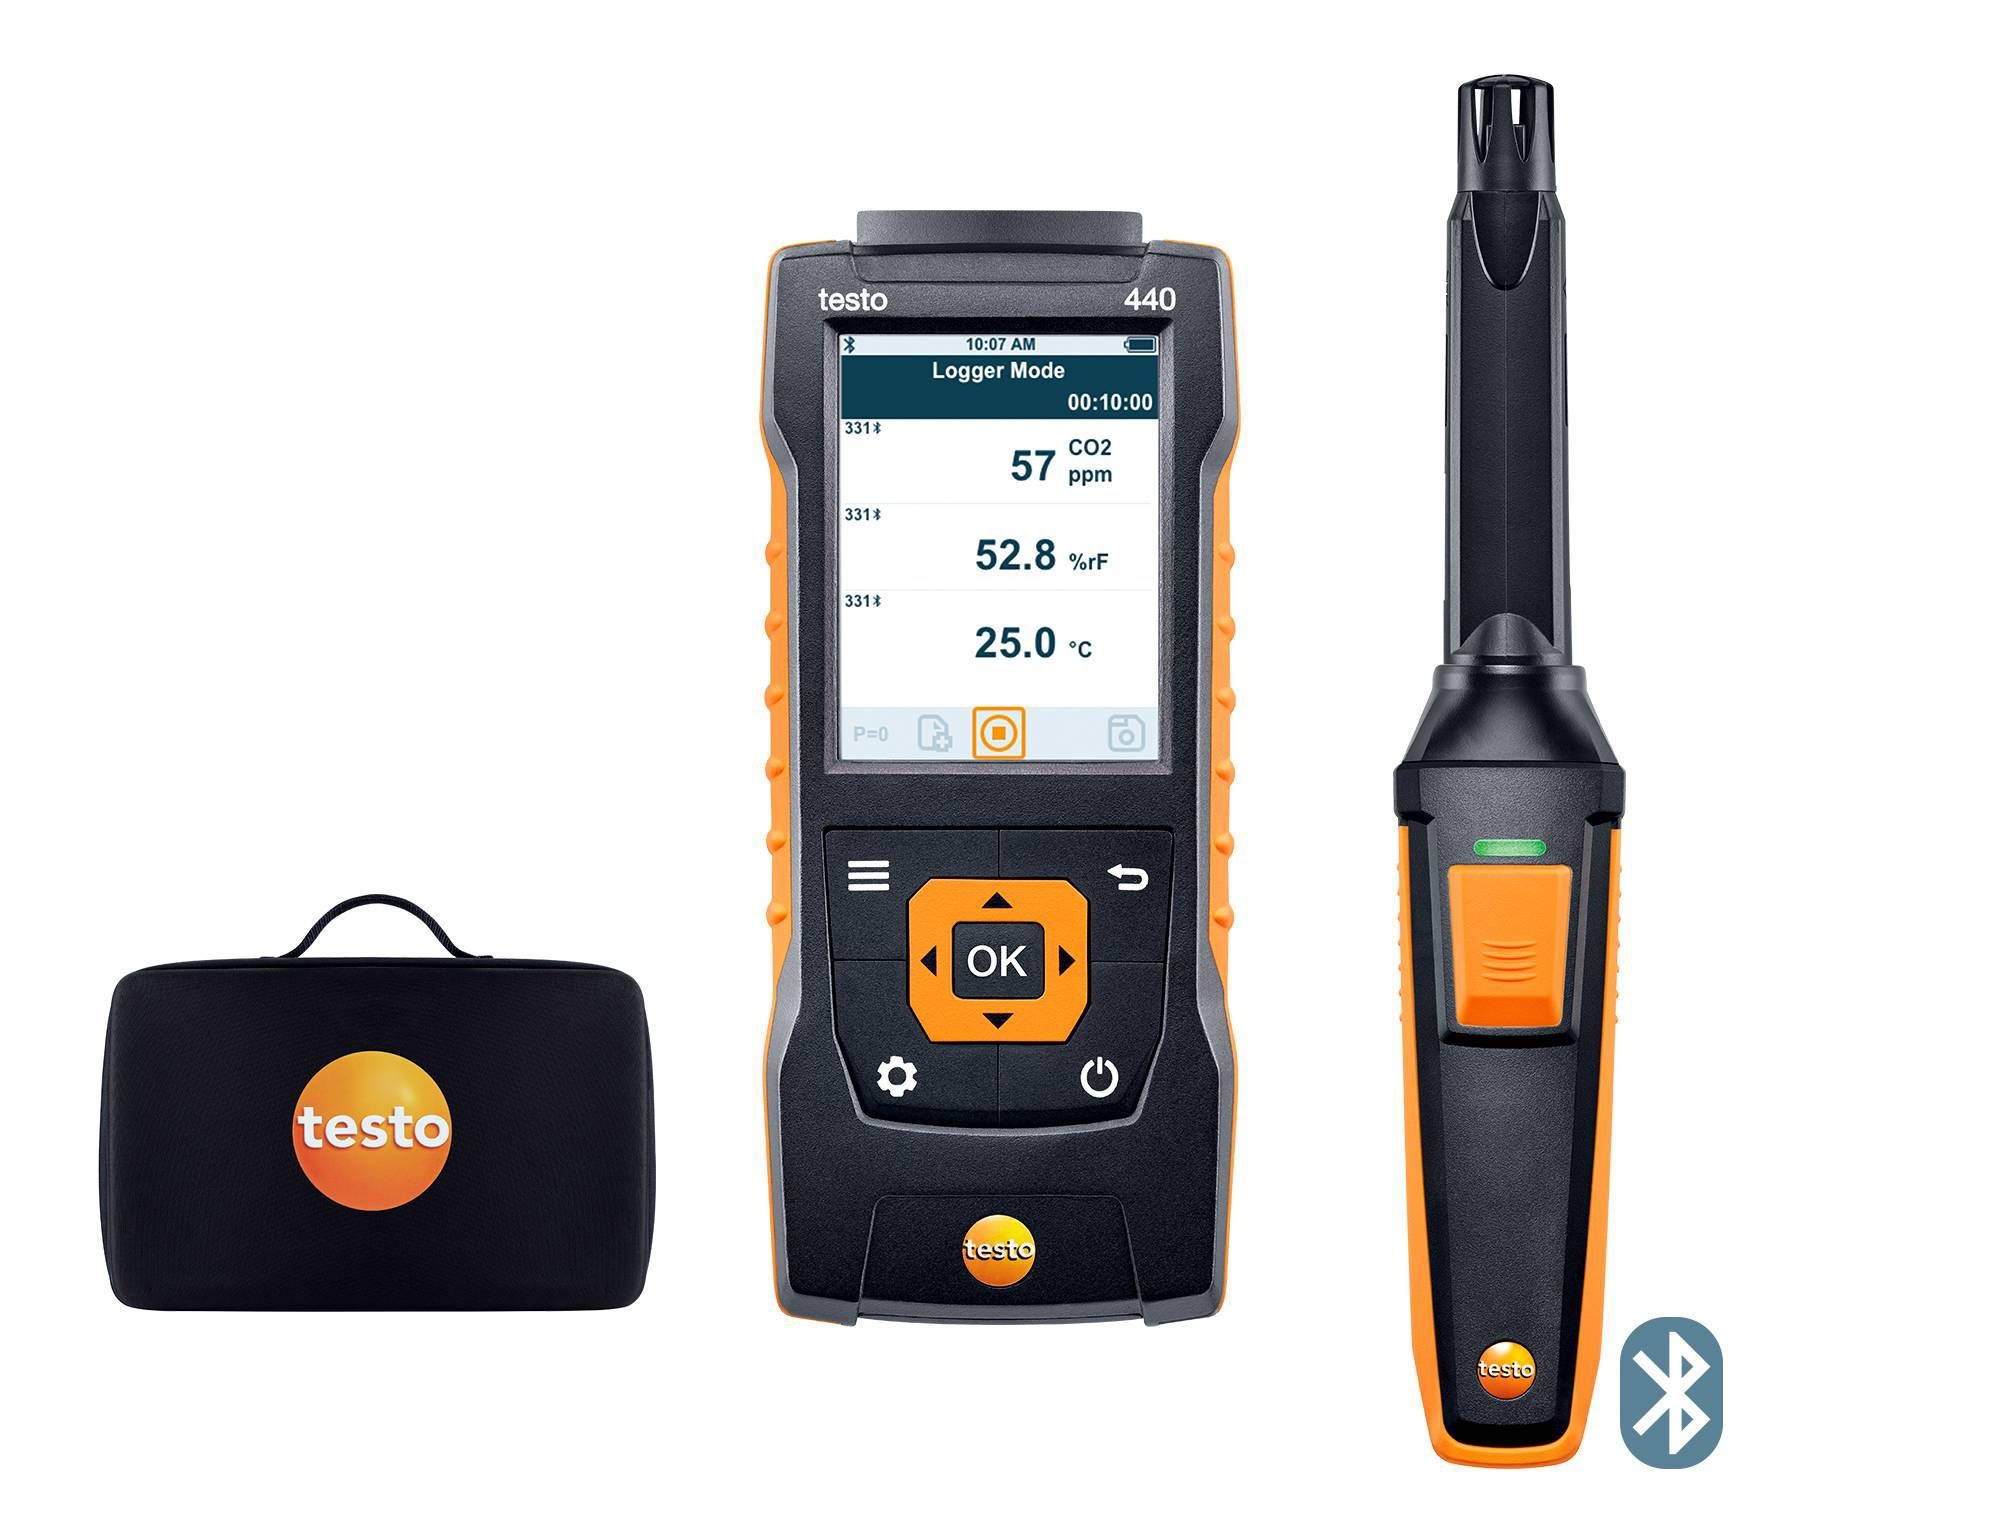 Set de CO2 testo 440 con Bluetooth®